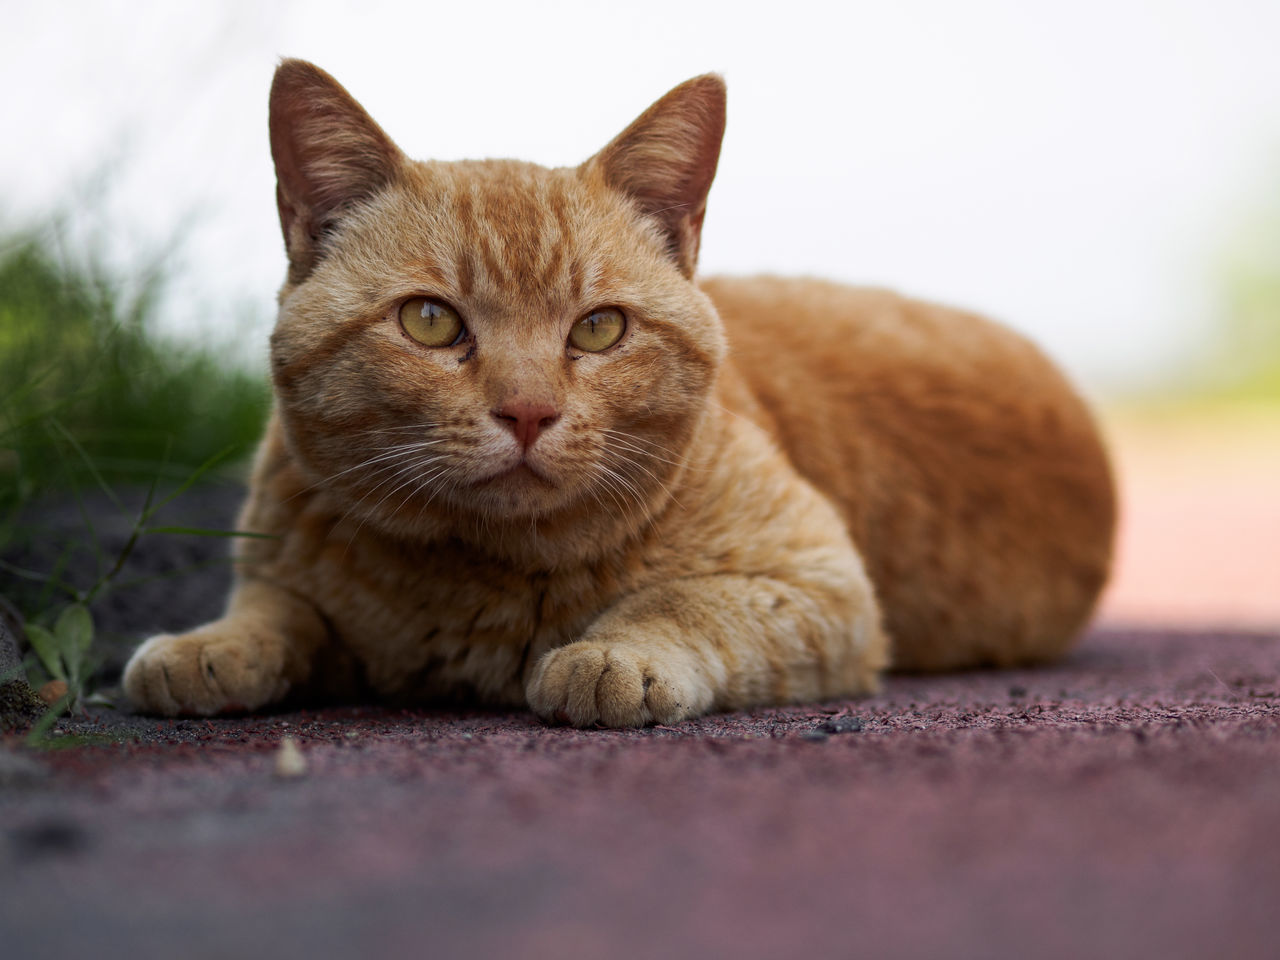 Photos from Sakurajima, Japan Animal Themes Close-up Day Domestic Animals Domestic Cat Feline Ginger Cat Japan KYUSHU Looking At Camera Lying Down Mammal No People One Animal Outdoors Pets Portrait Relaxation Selective Focus Sitting Whisker